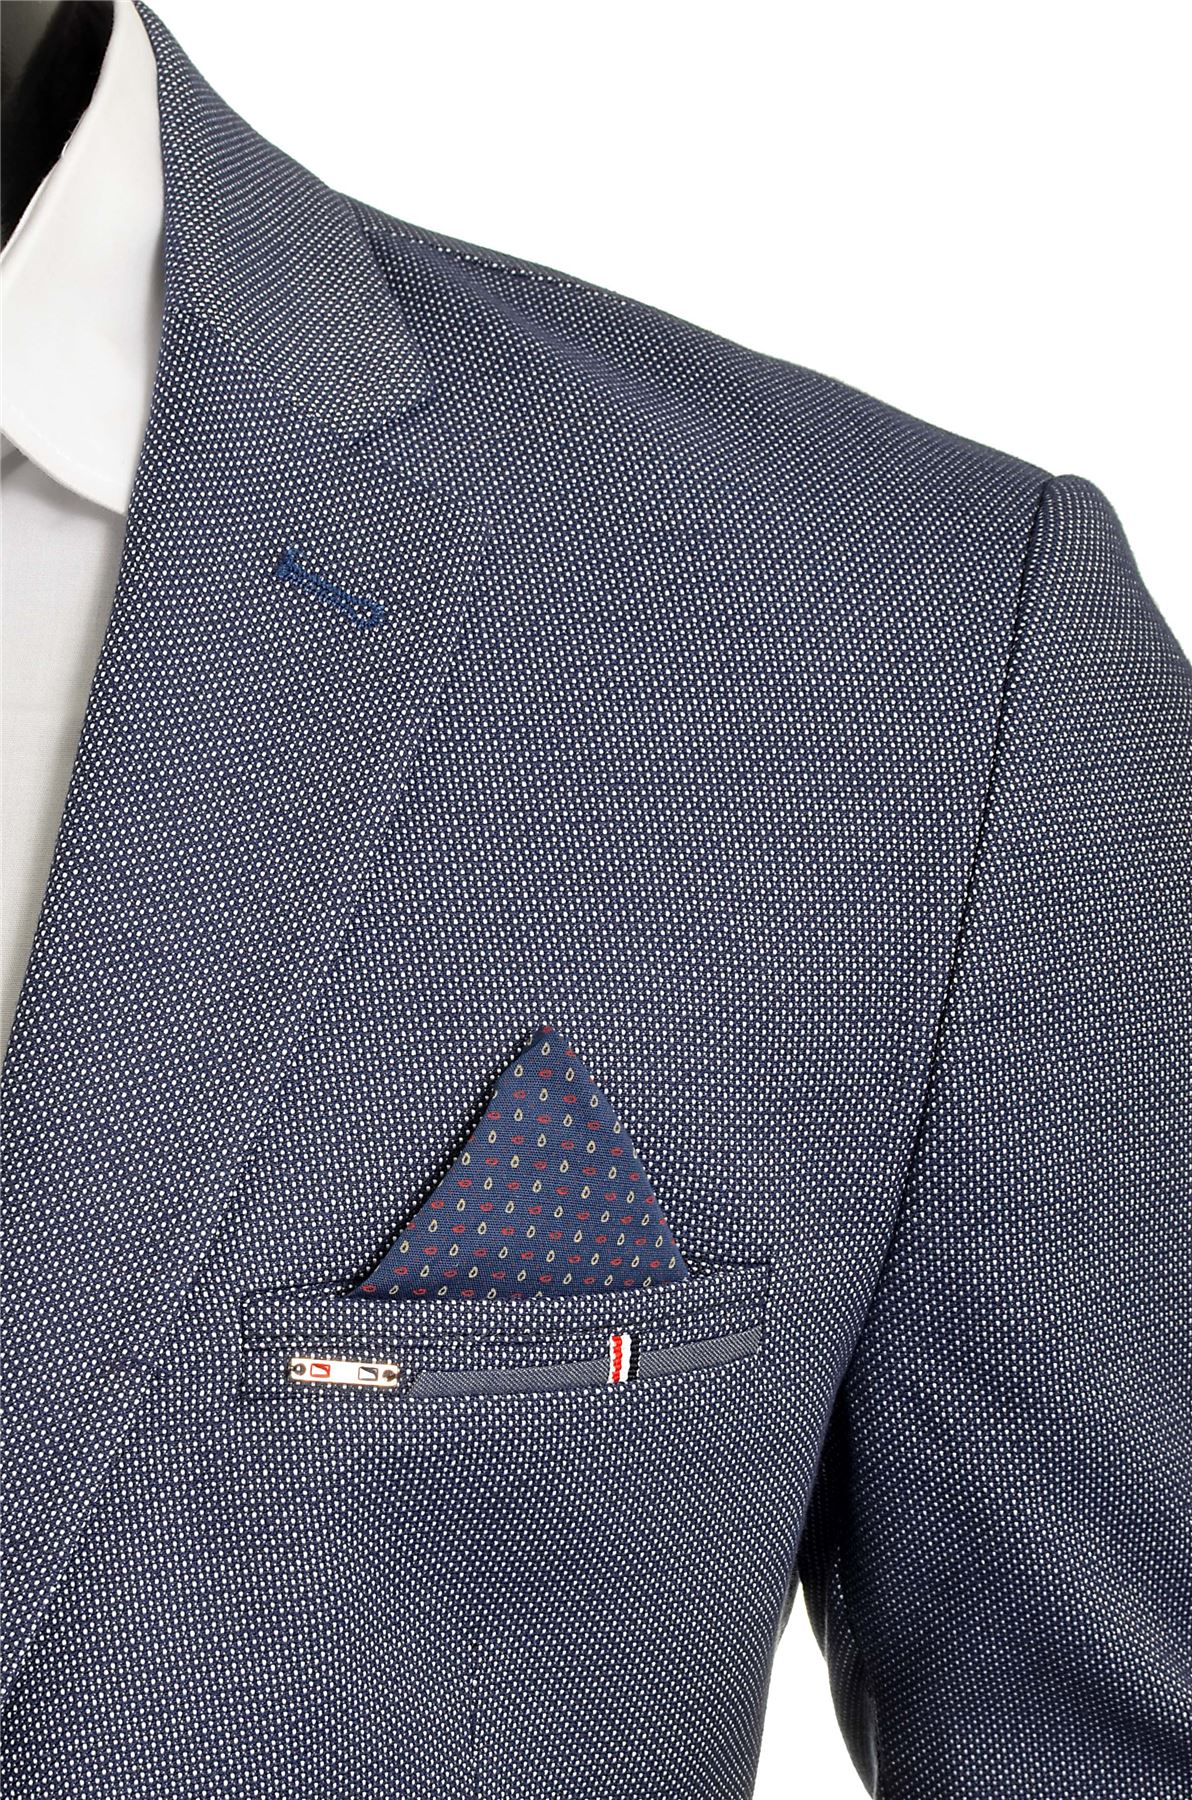 Men-039-s-Classic-Design-Blazer-Jacket-Blue-Casual-Contrast-Finish-Slim-Soft-Cotton thumbnail 4